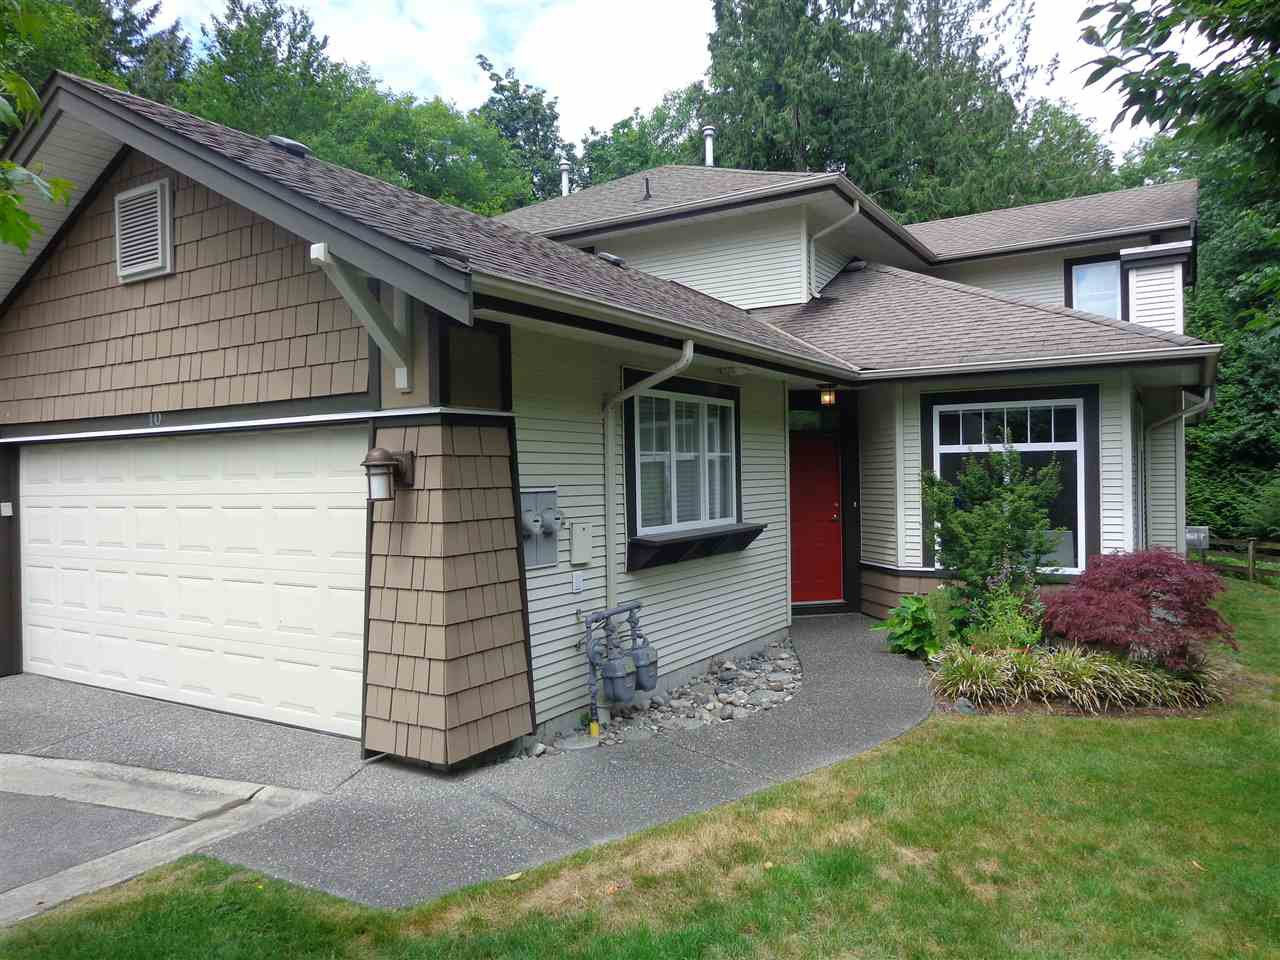 """Main Photo: 10 8588 168A Street in Surrey: Fleetwood Tynehead Townhouse for sale in """"The Brookstone"""" : MLS®# R2384013"""